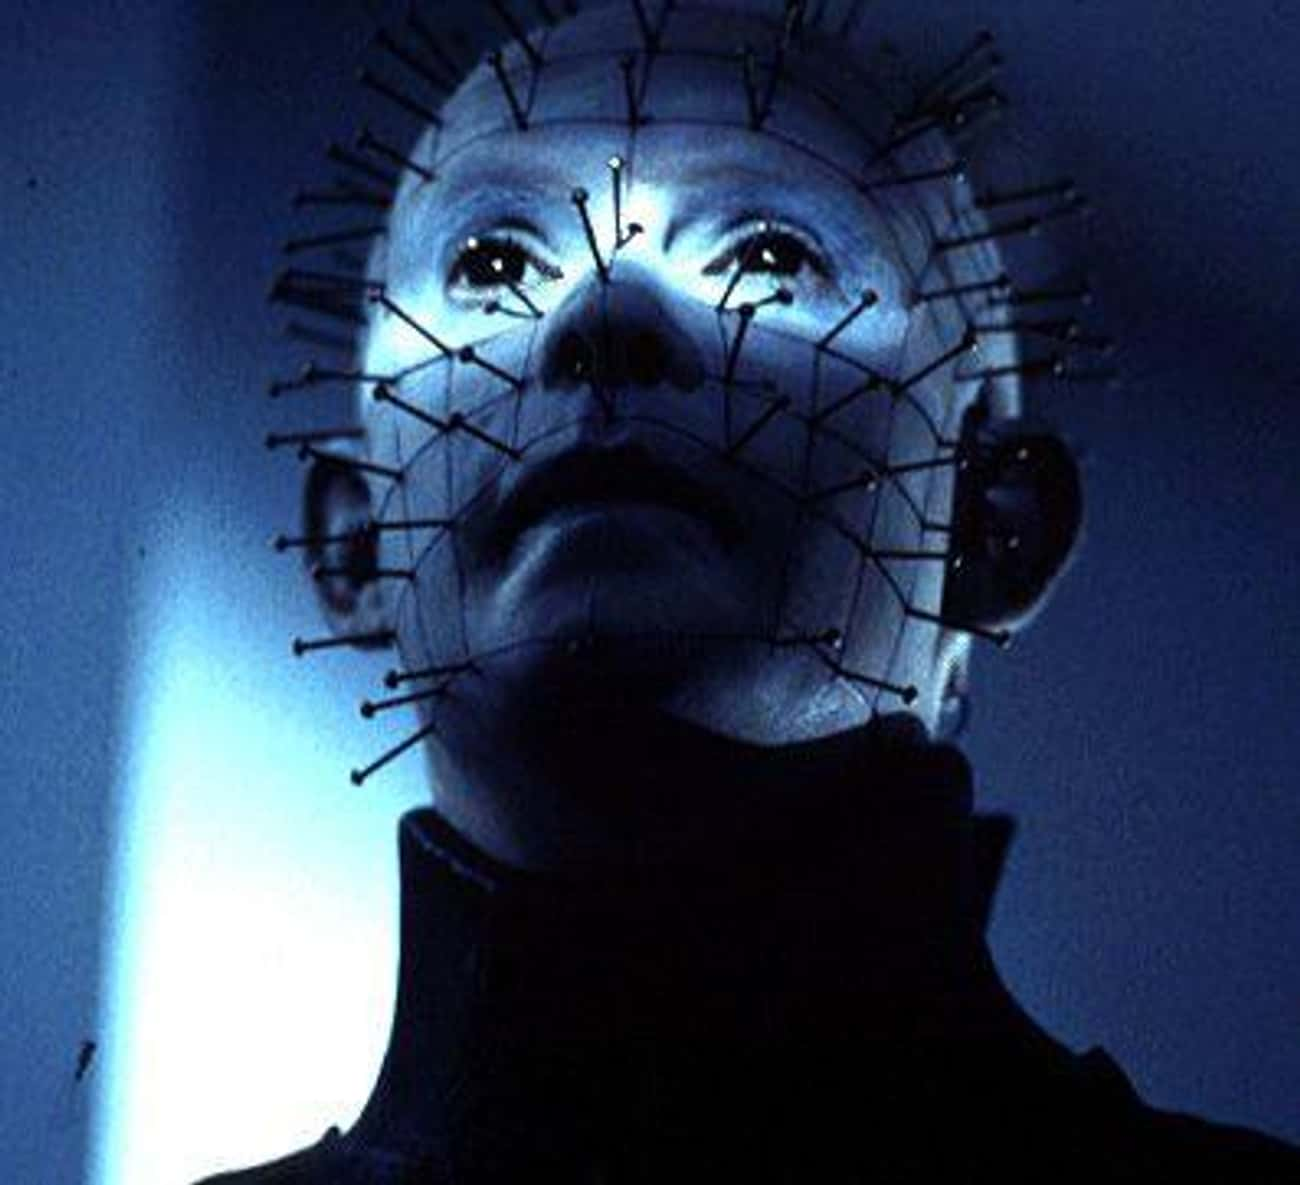 Pinhead Isn't Even His Rea is listed (or ranked) 4 on the list The Strange And Elaborate Backstory Of Pinhead From 'Hellraiser'